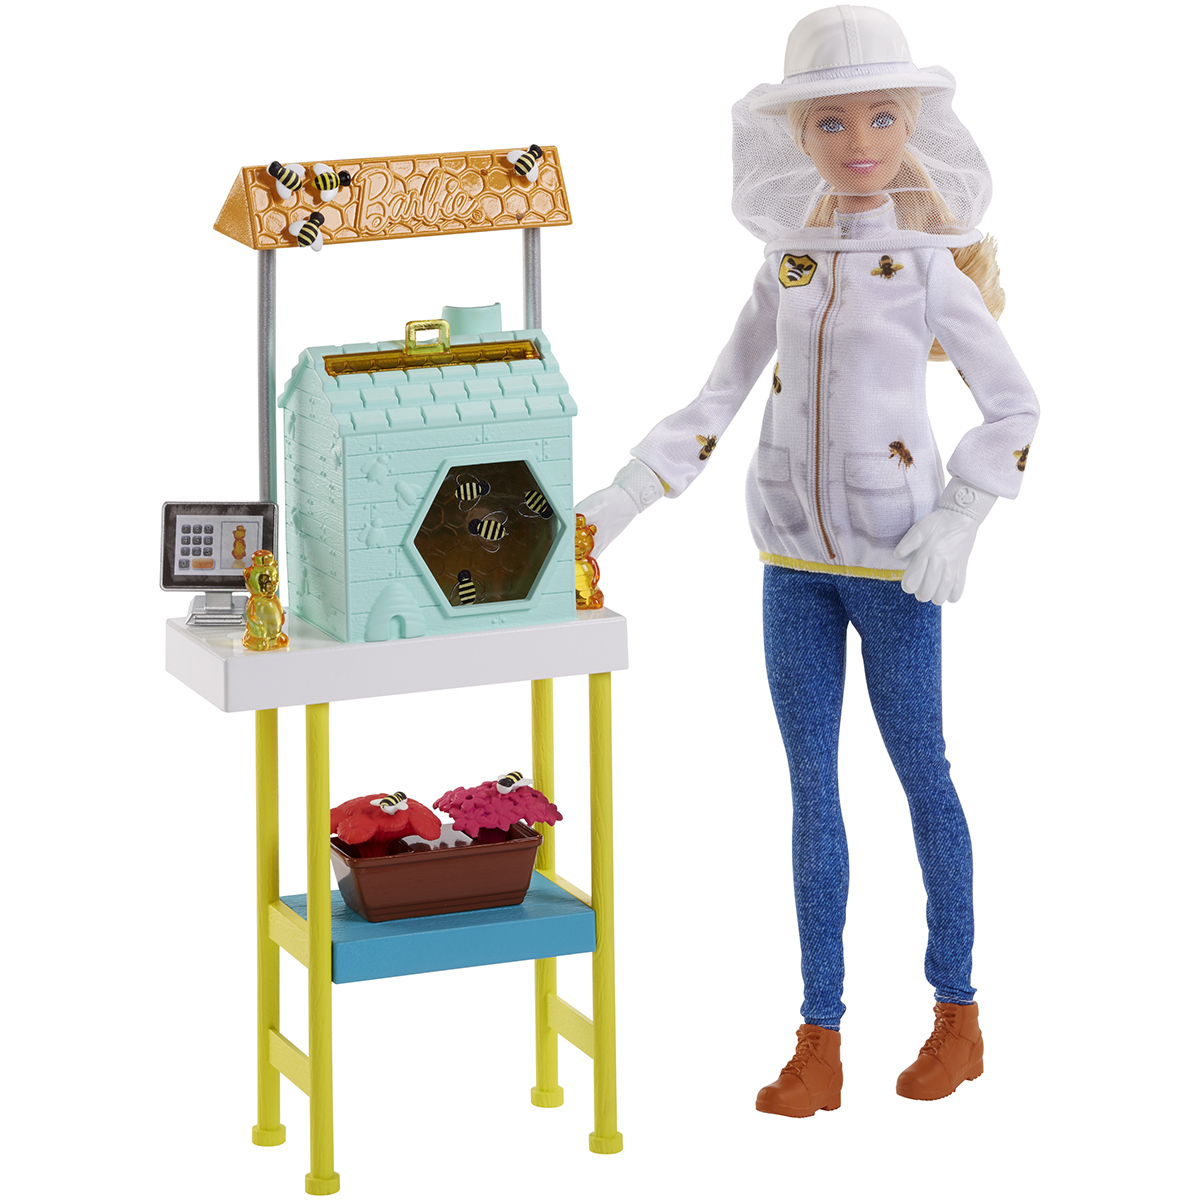 Set de joaca Barbie, Apicultor, FRM17